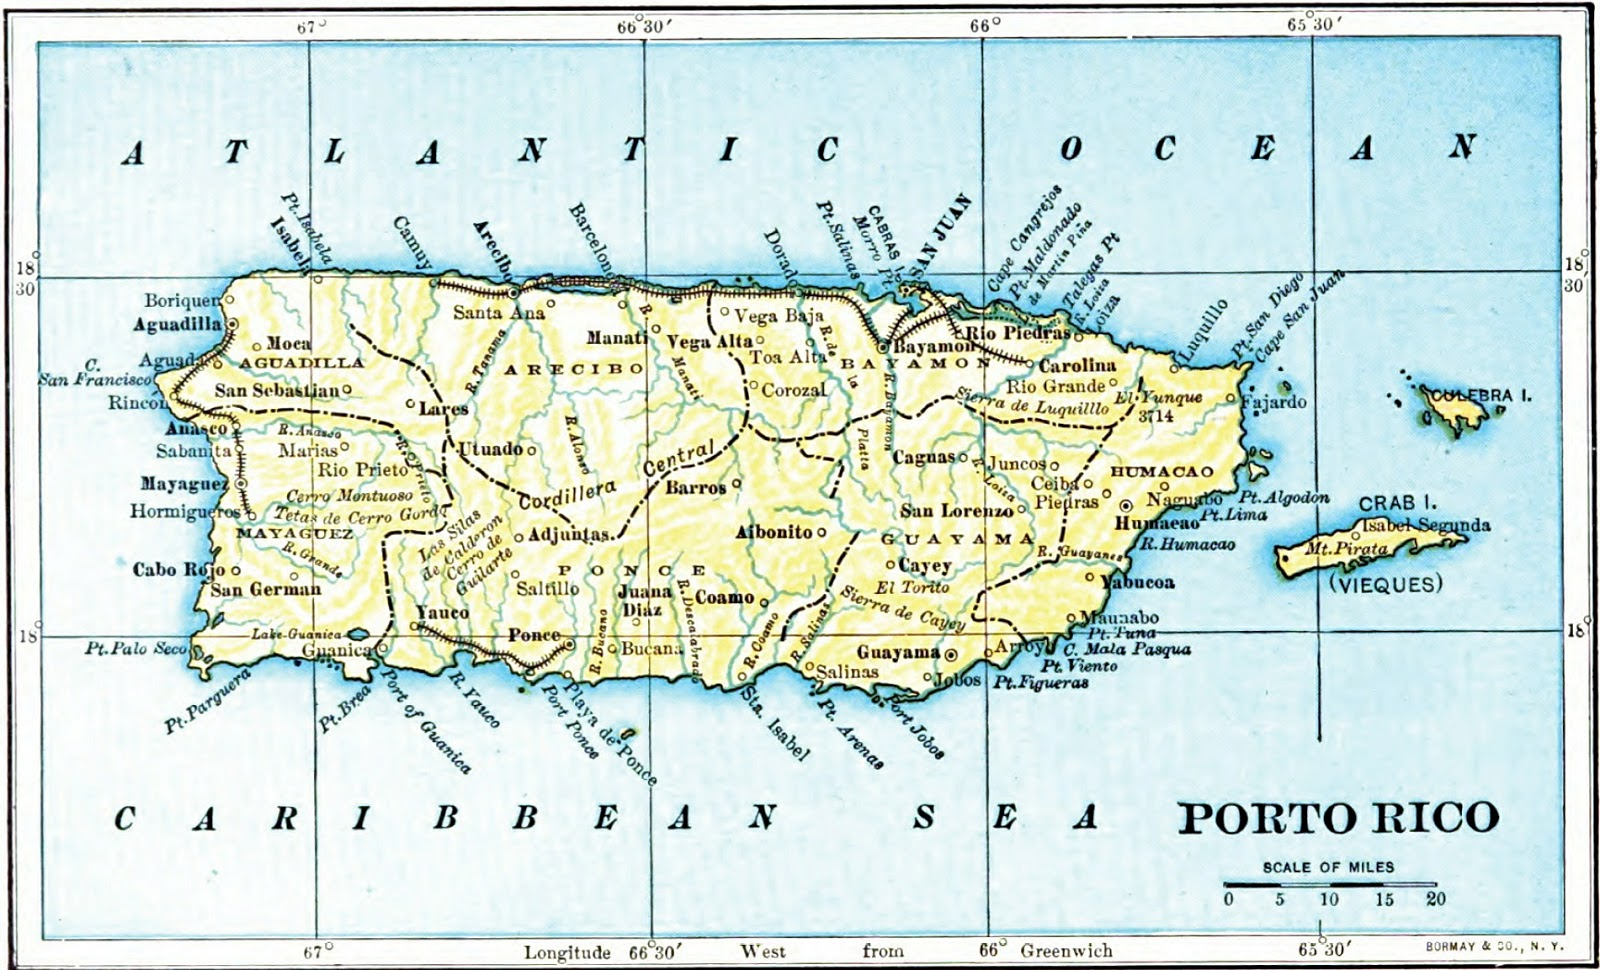 puerto rico geographical map Puerto Rico Geographical Maps Of Puerto Rico Global Encyclopedia puerto rico geographical map